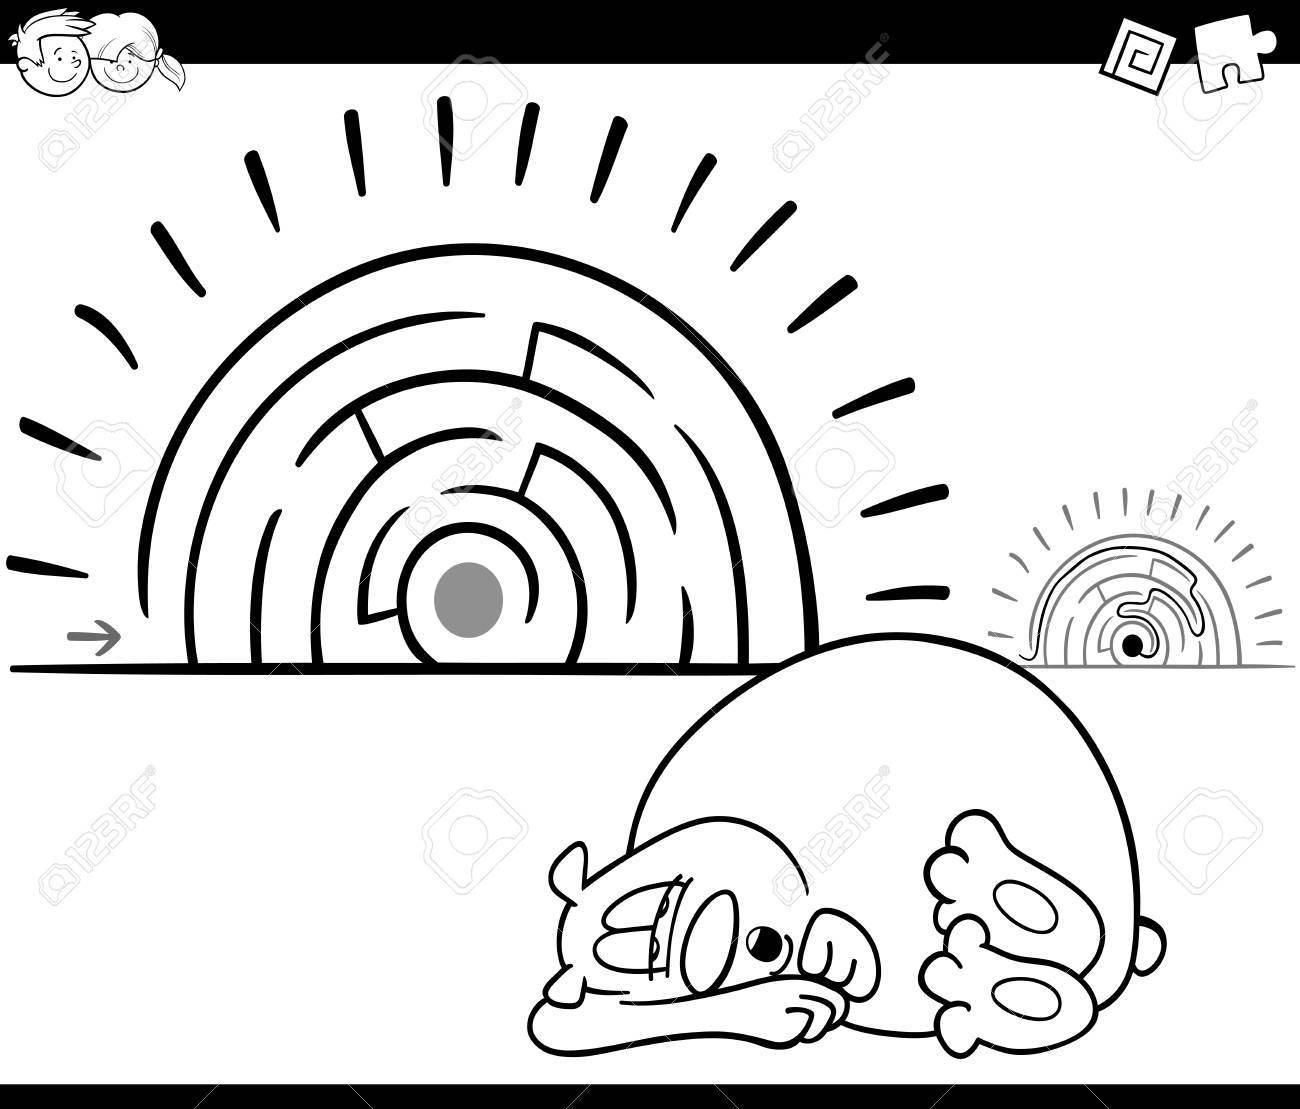 Black And White Cartoon Illustration Of Education Maze Or Labyrinth ...